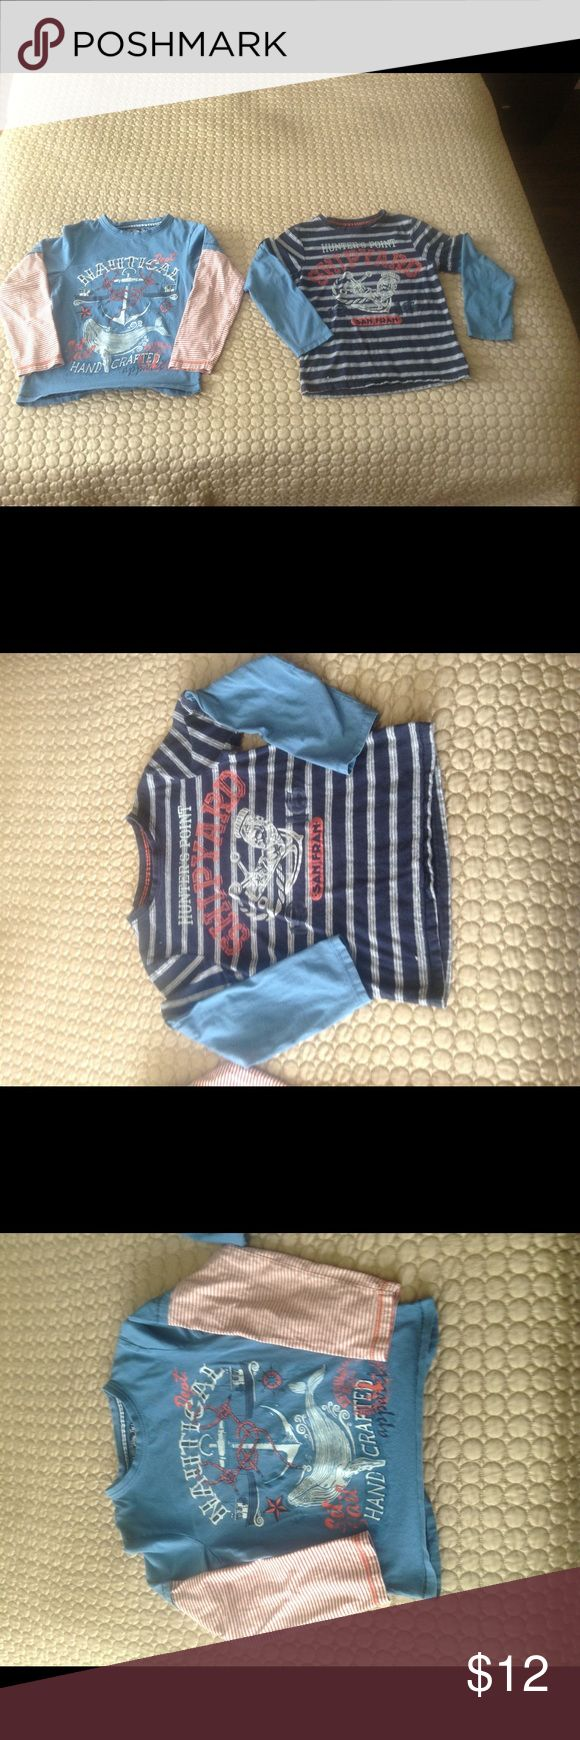 Bundle of 2 nautical long-sleeved tops These are from England. Worn once (washed 2x). My kid is not into pirates or nautical themes. No writing on the back. Fabulous condition. Cotton! Ahoy Matey...bundle for 30% off. Offers welcome. Tu Shirts & Tops Tees - Long Sleeve